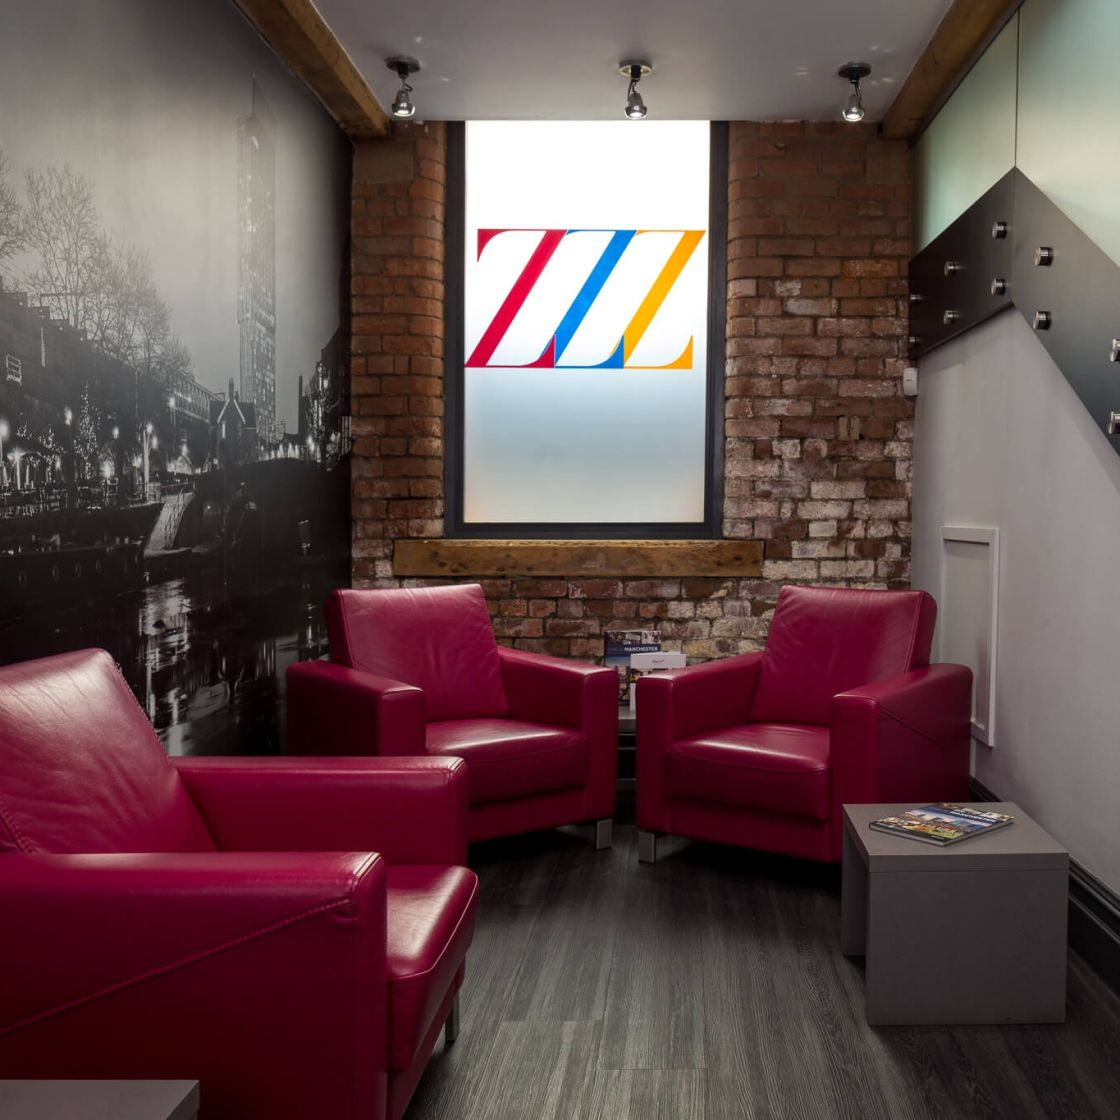 IconInc @ Roomzzz Manchester City Reception Lounge with Leather Armchairs. Student Accommodation in Manchester